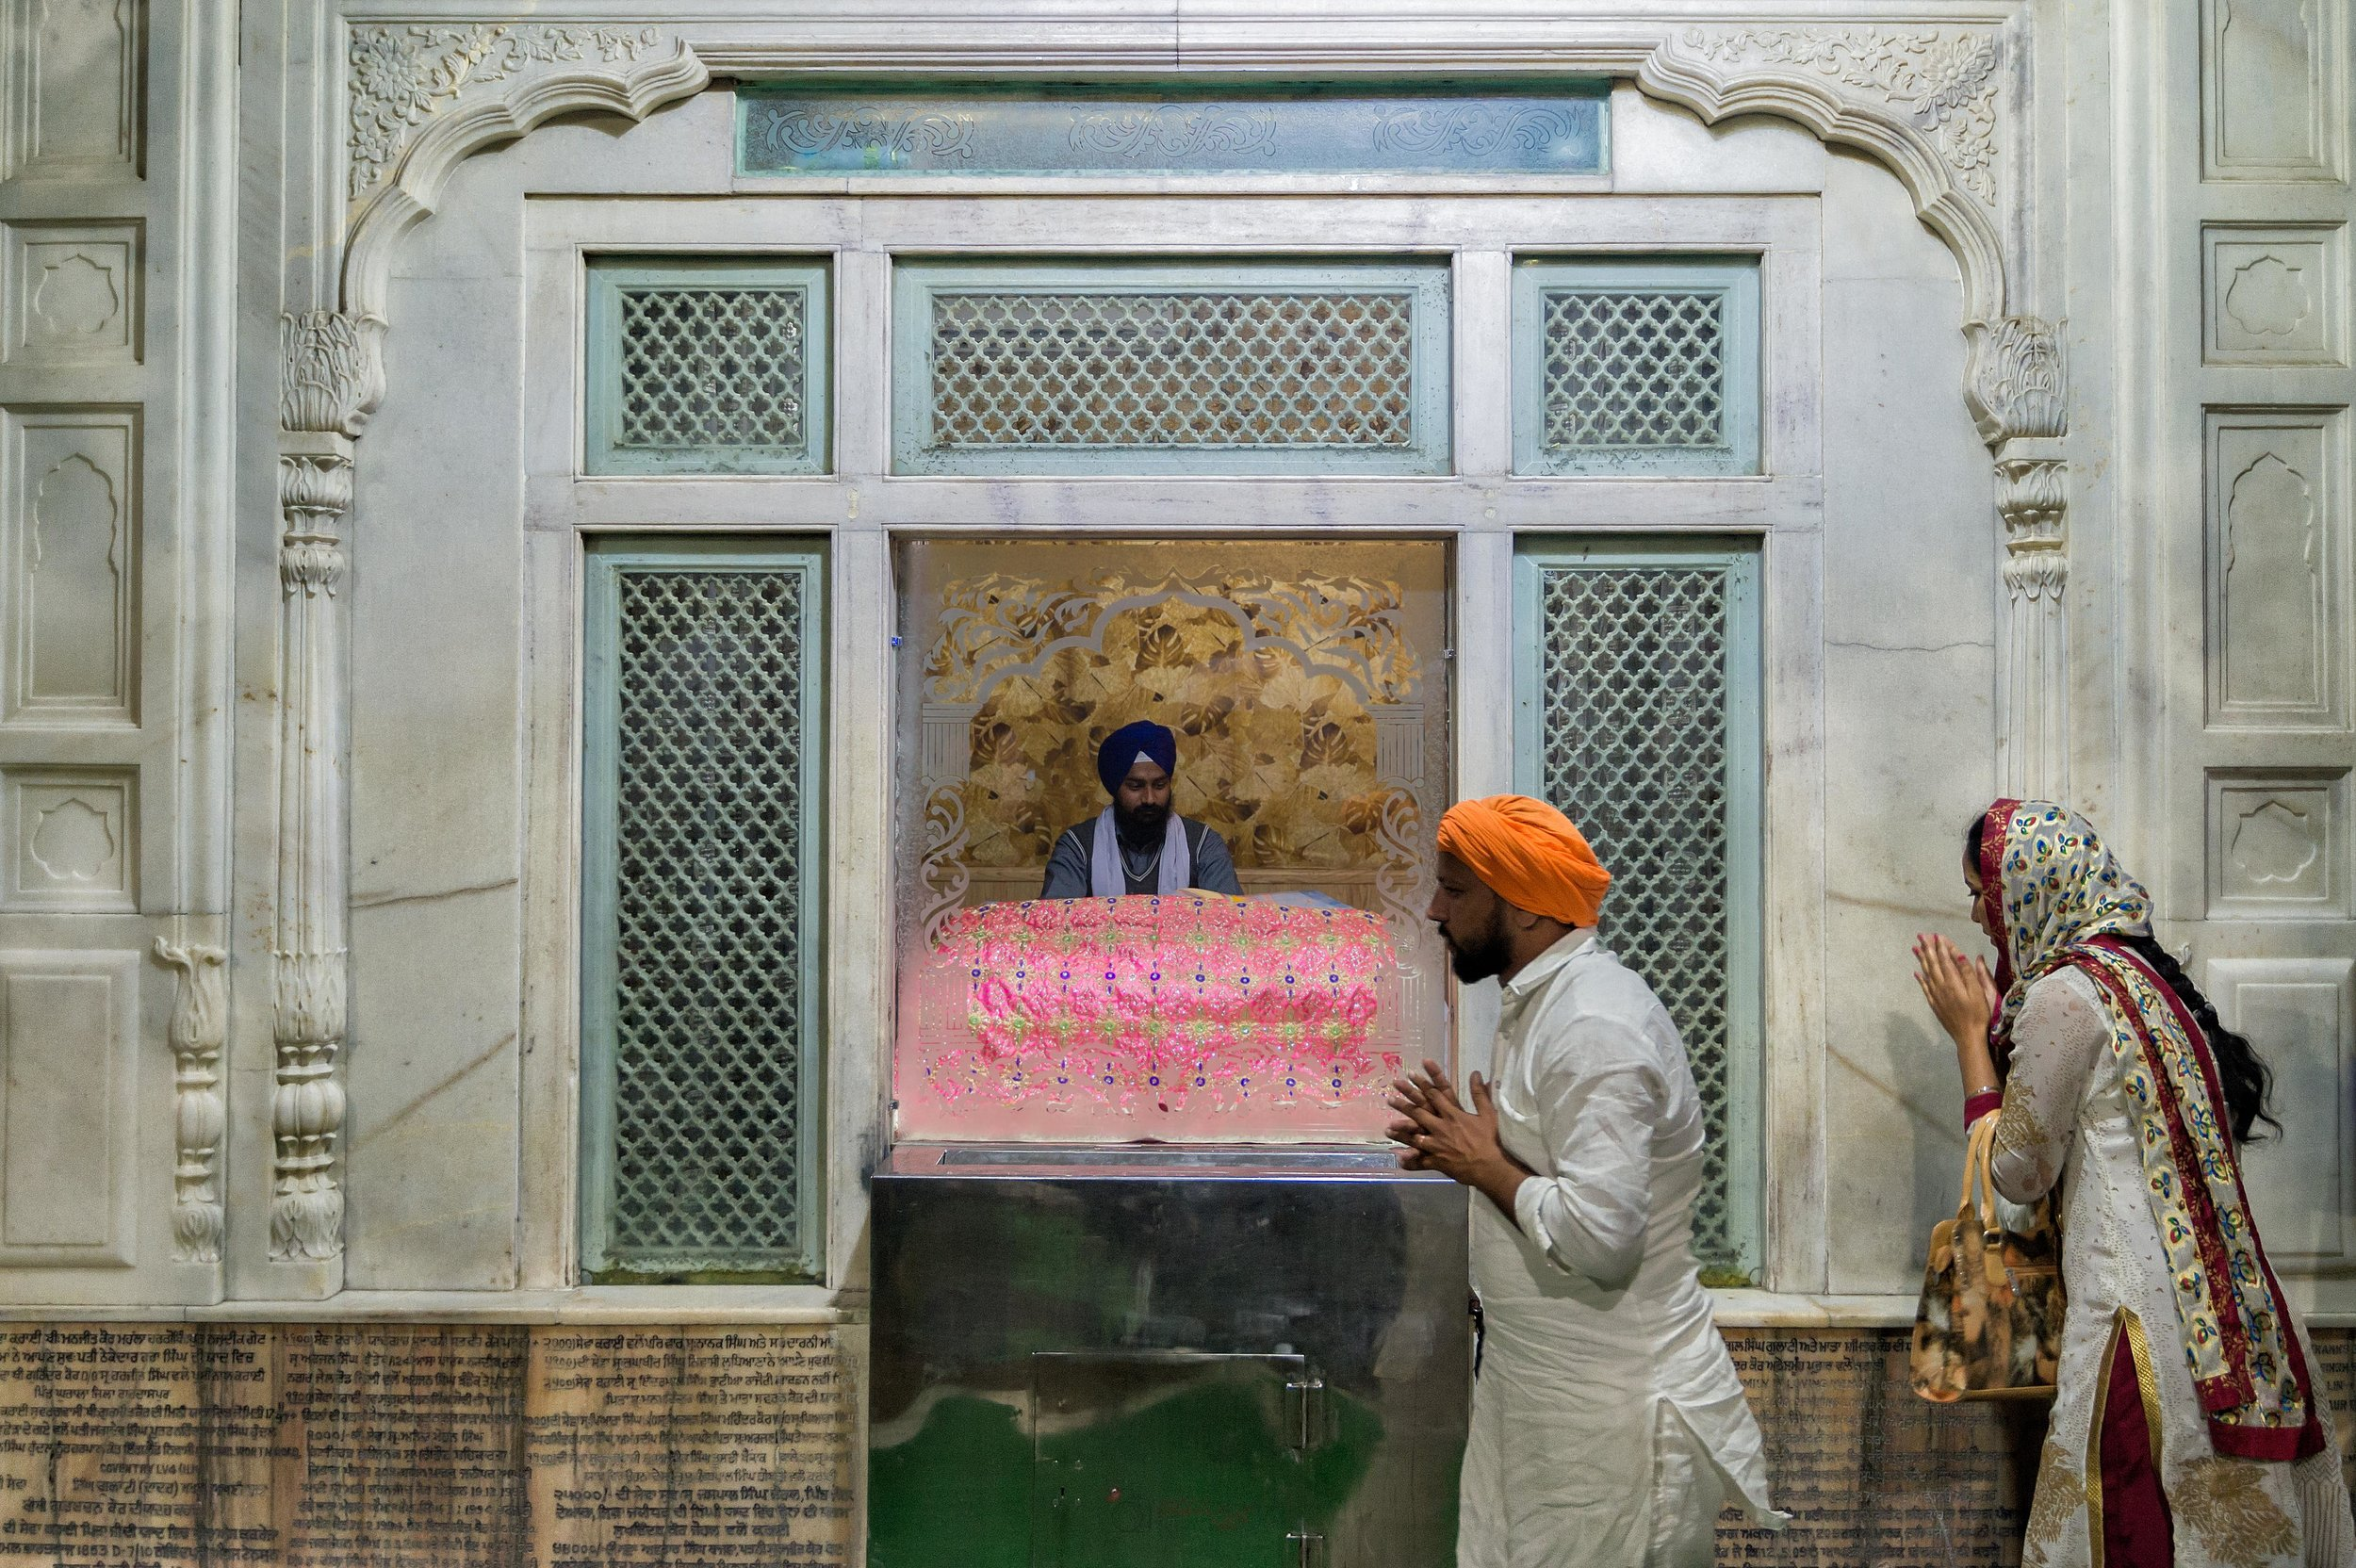 If i am not mistaken and I do believe that in the North, South, East & West side of the Golden Temple are small cubicles like this where priests would go at every part of the day to read the text from the Holy Book.